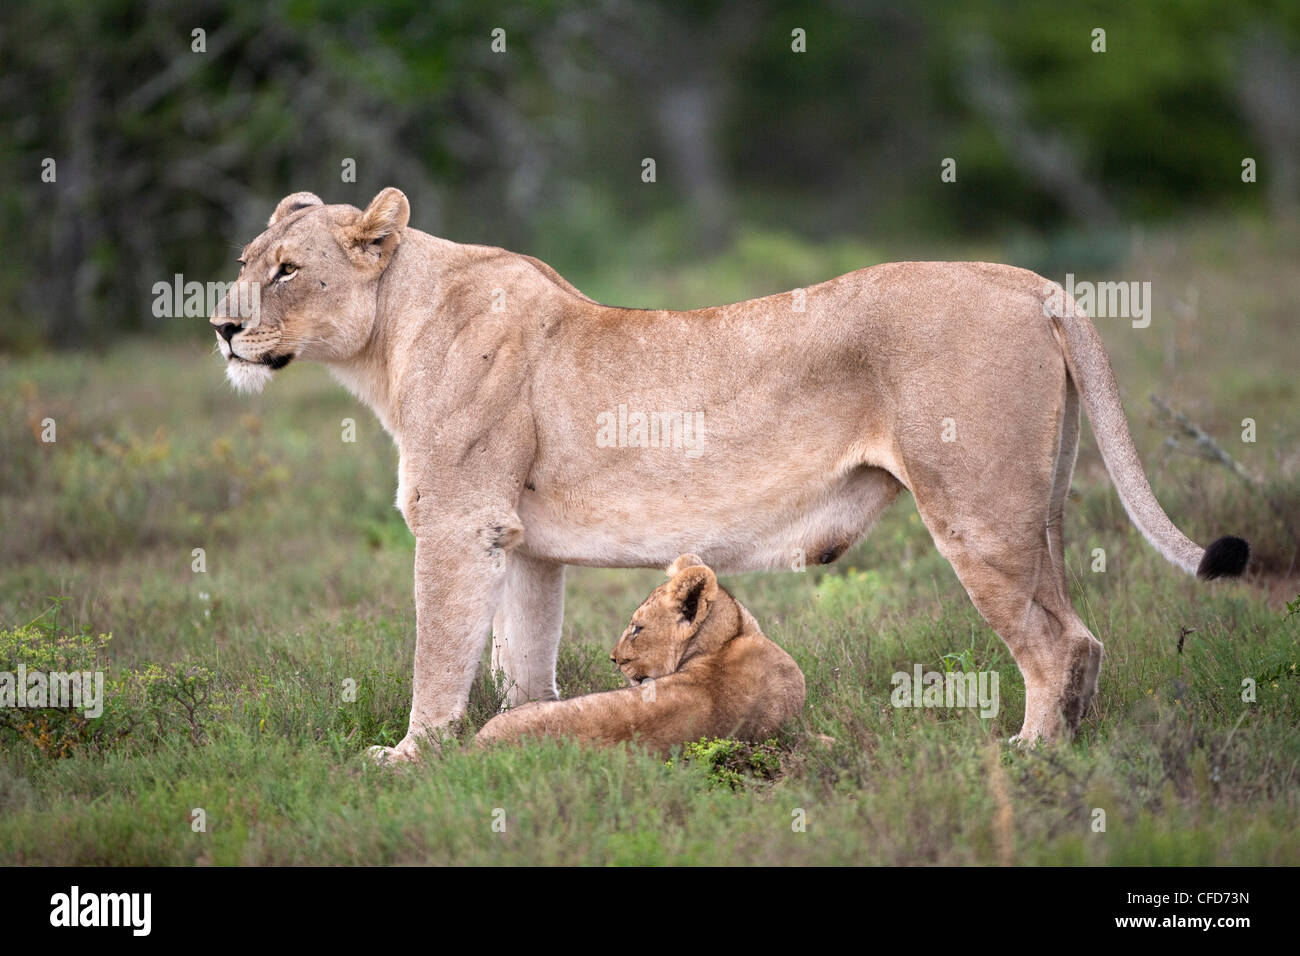 Lioness with cub (Panthera leo) Kwandwe private reserve, Eastern Cape, South Africa, Africa - Stock Image